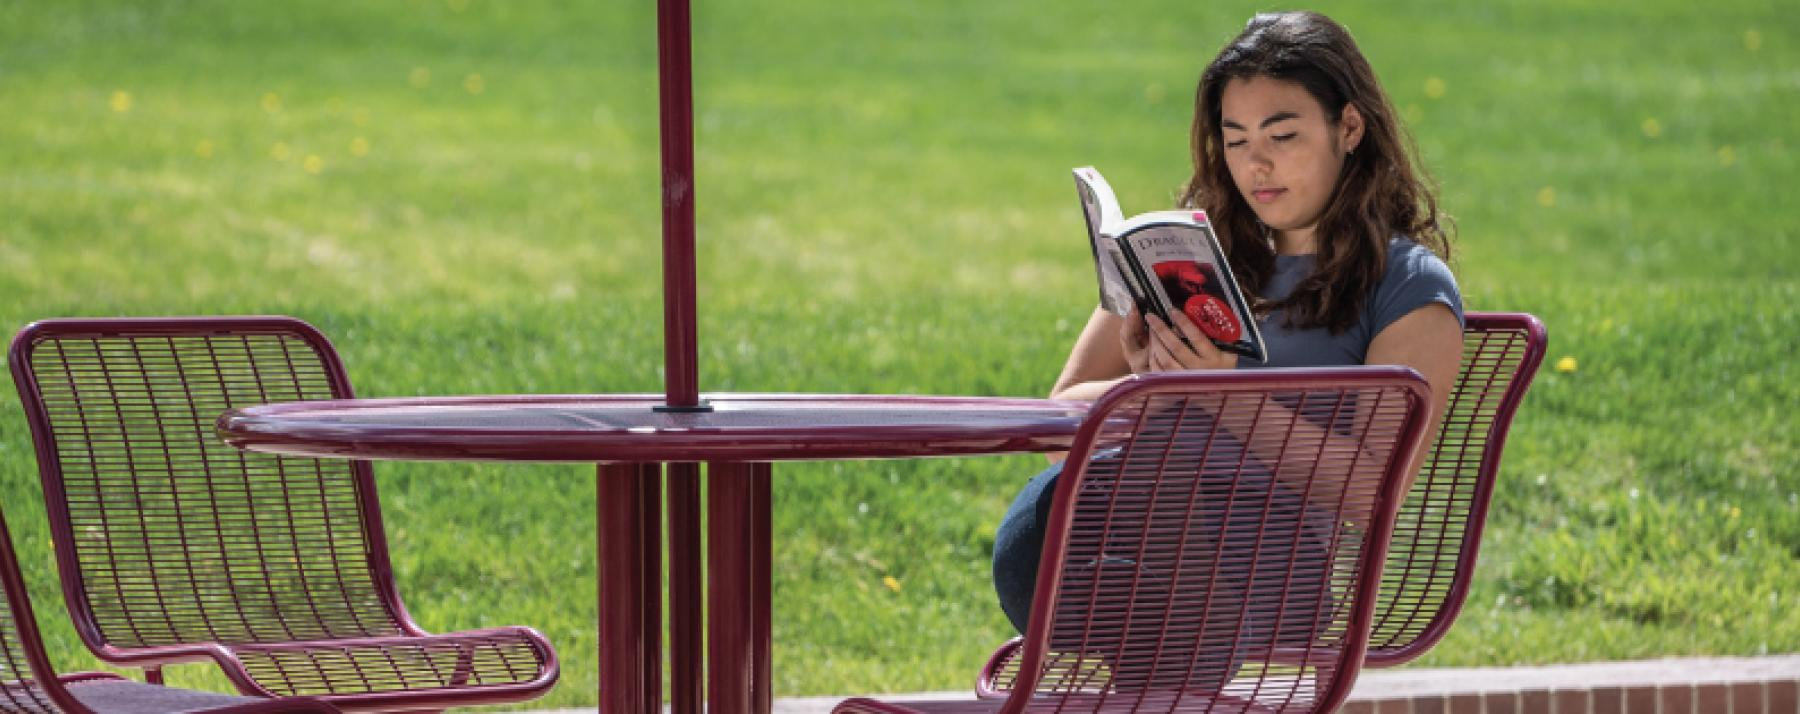 student reading outdoors on campus